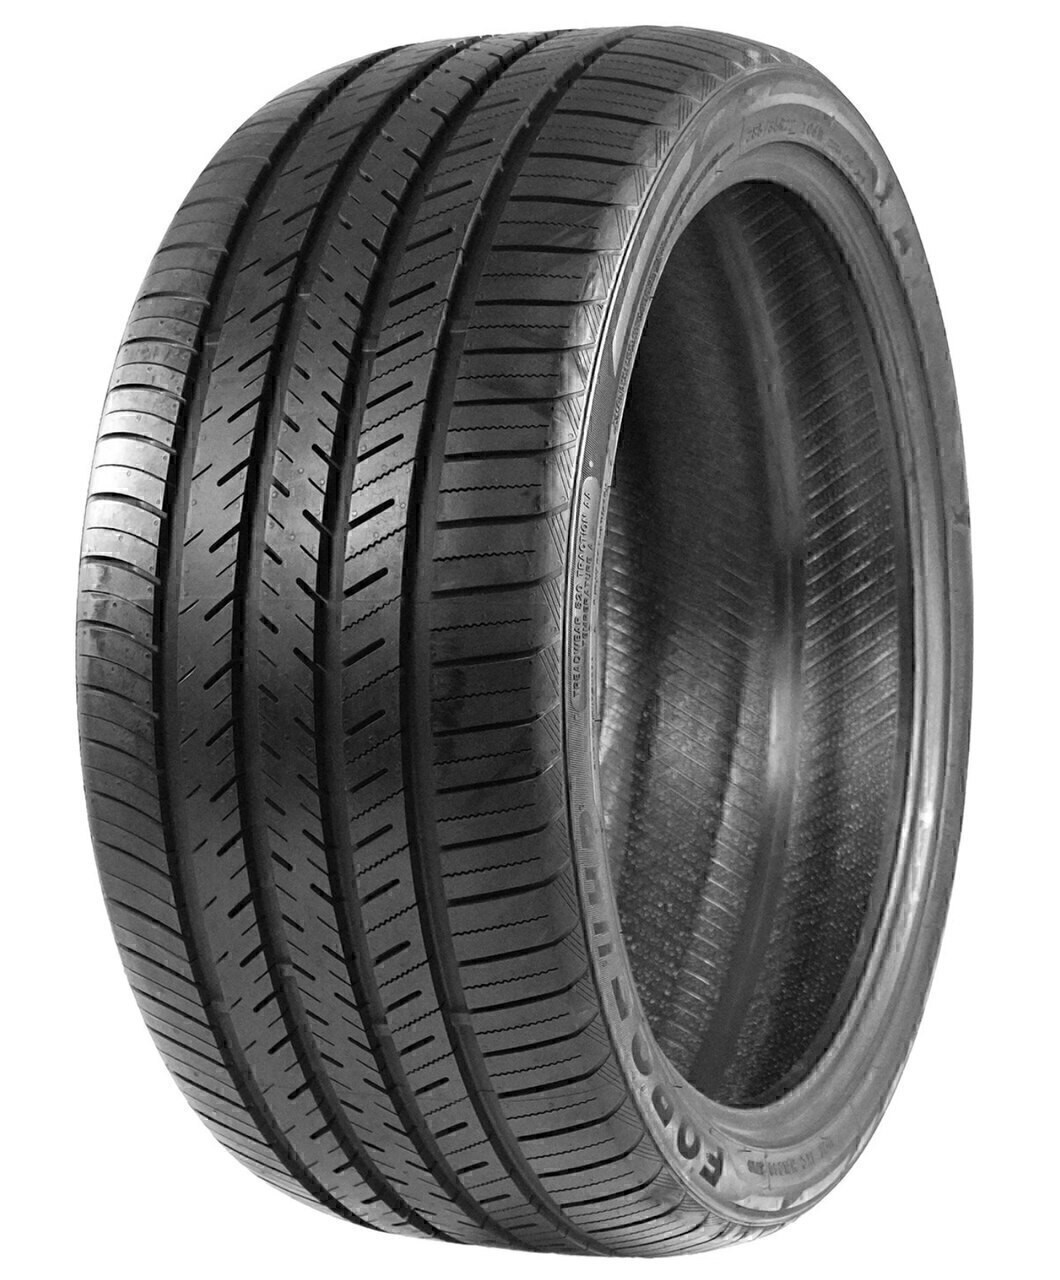 275/25R30 ATLAS FORCE UHP 101W XL 520AA